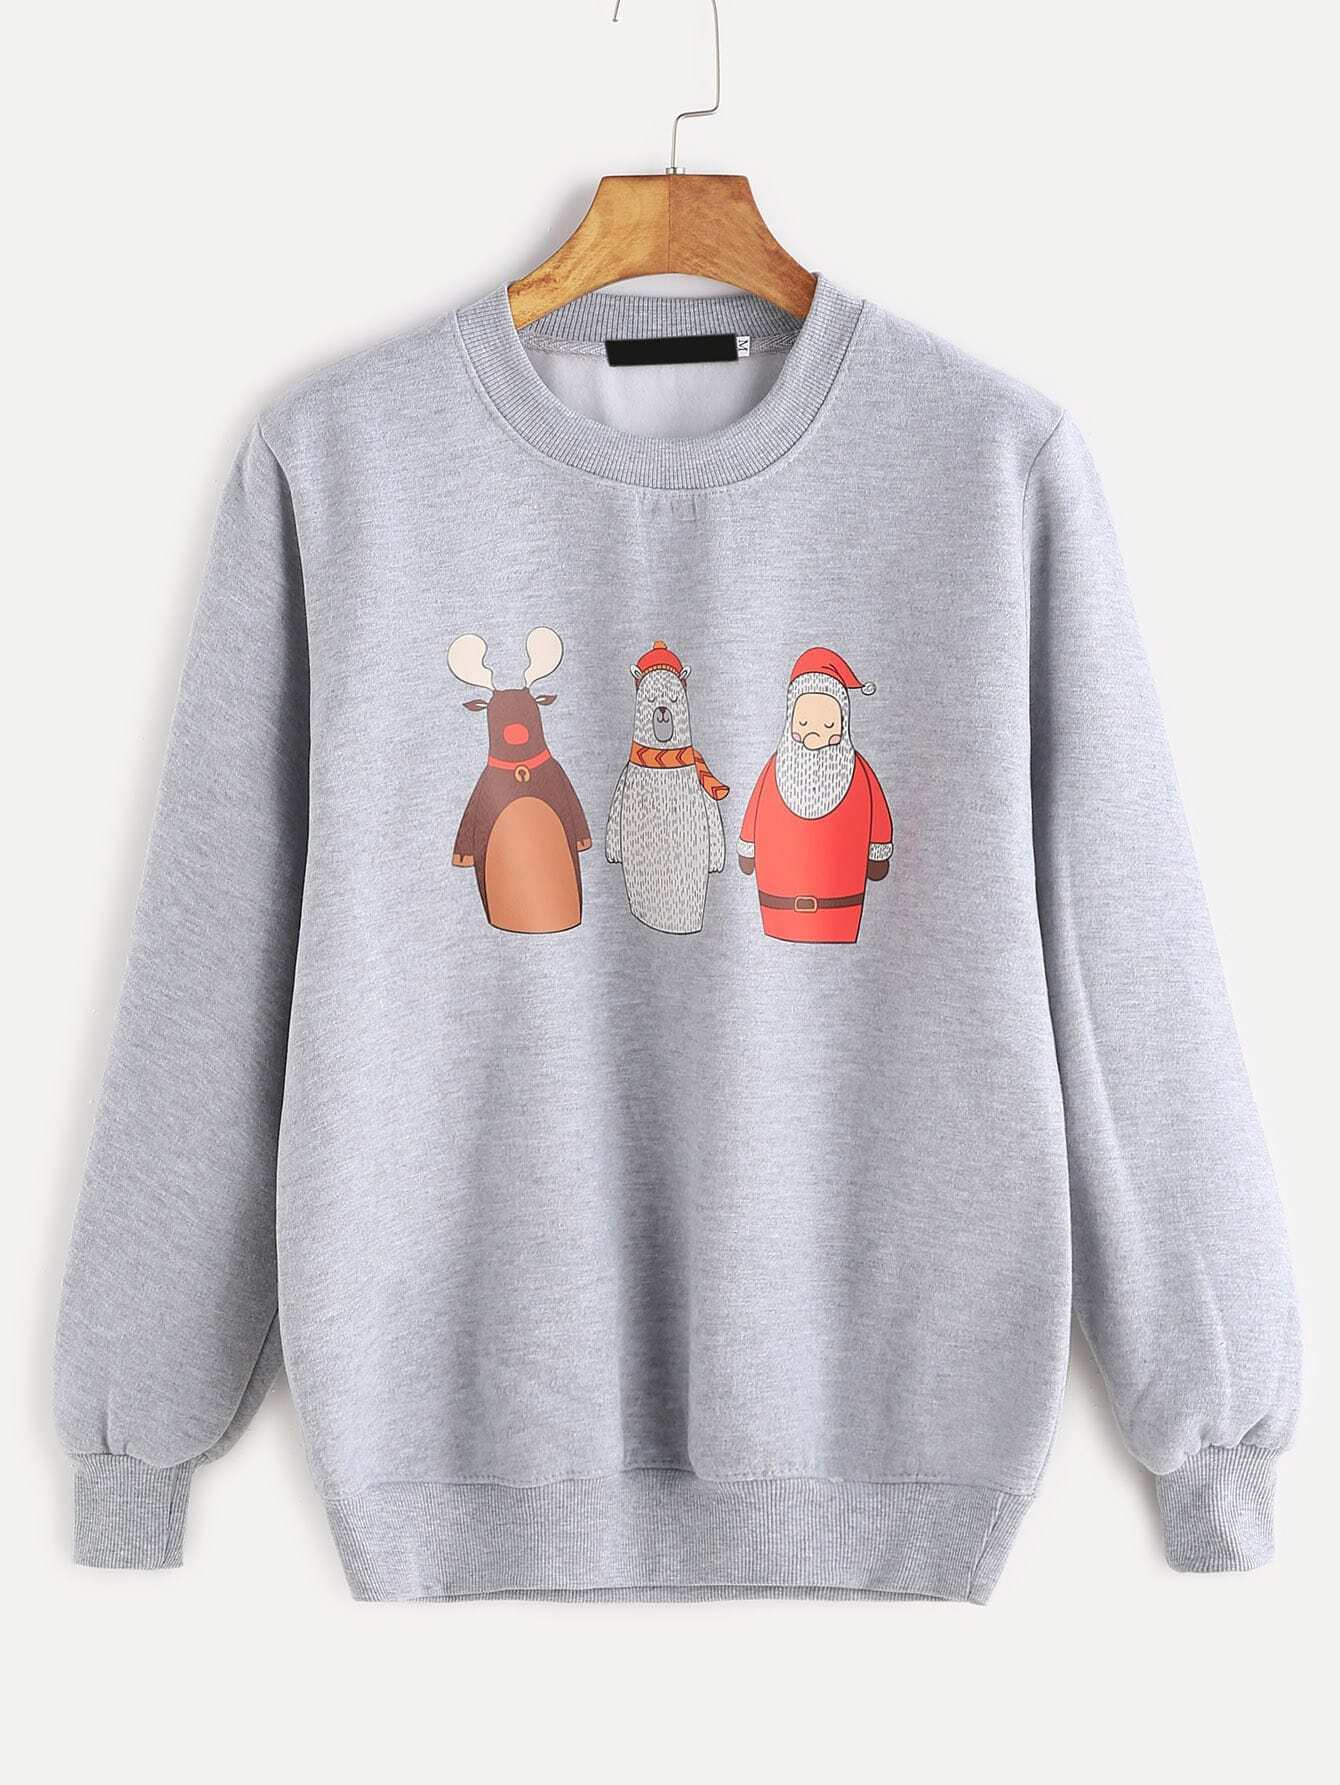 Grey Cartoon Print Ribbed Trim Sweatshirt sweatshirt161118302